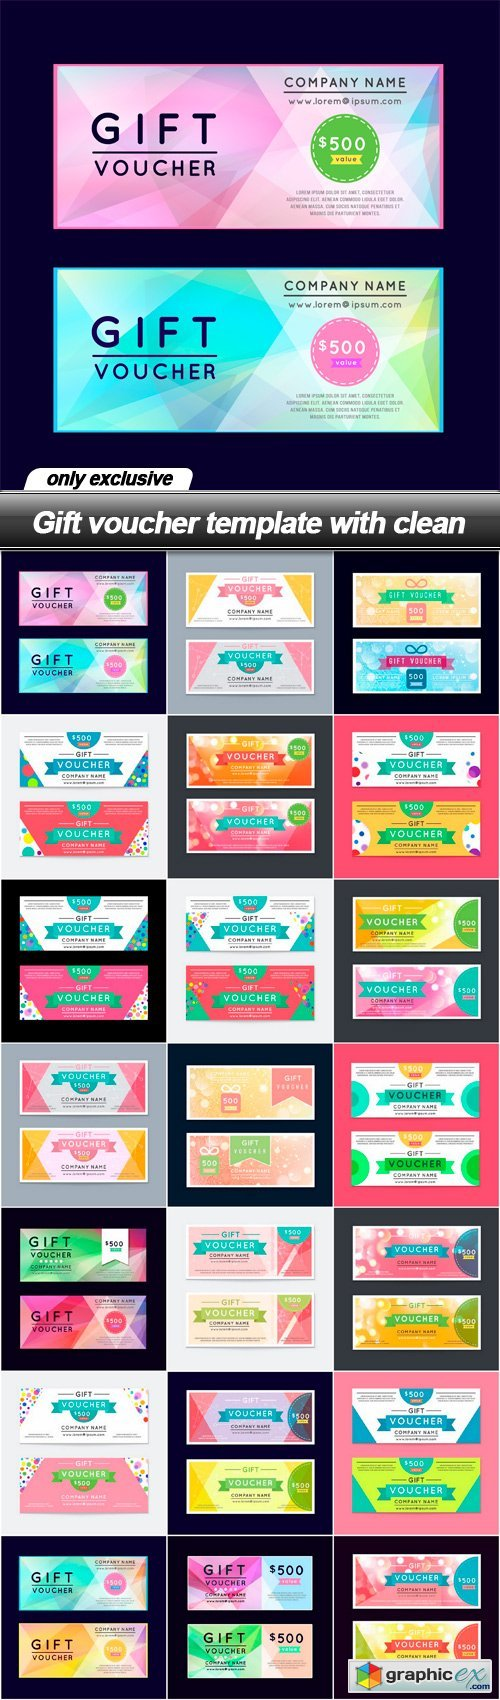 Gift voucher template with clean - 21 EPS